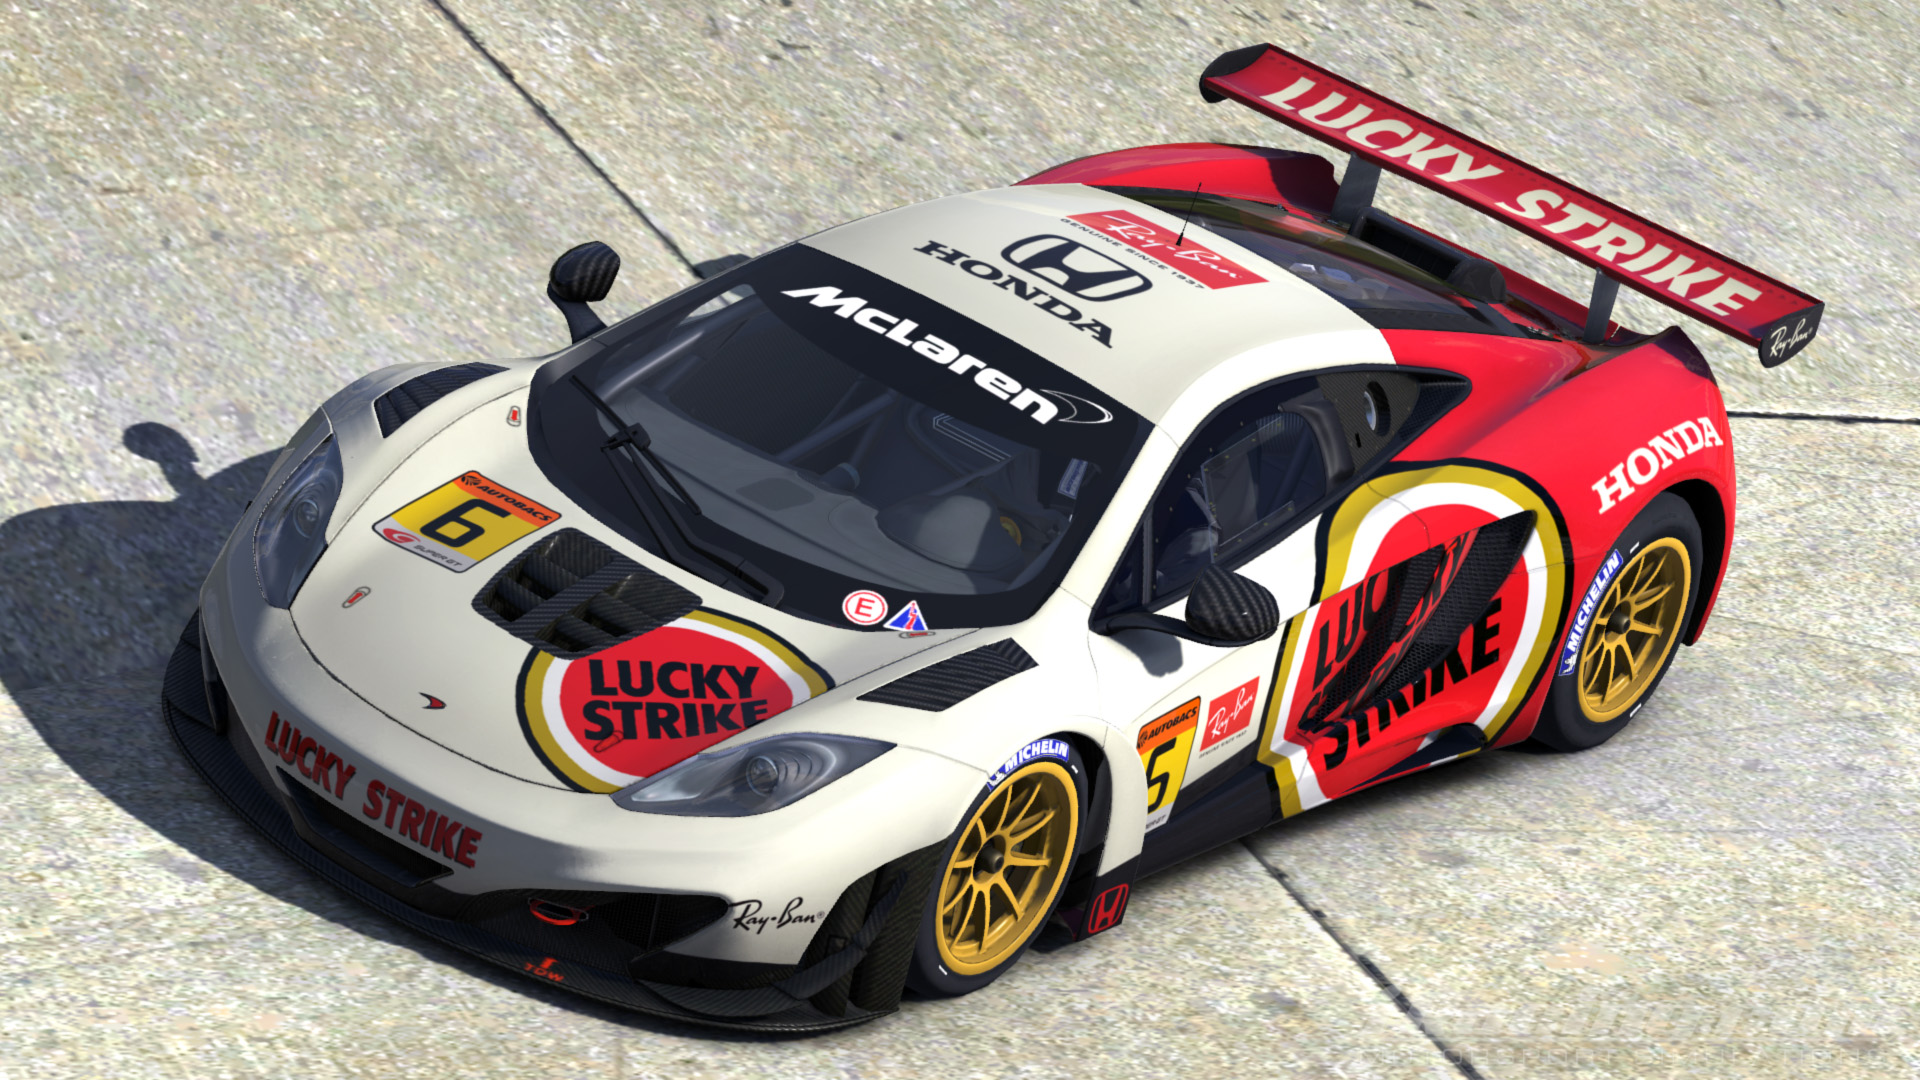 Preview of Mclaren MP4 LUCKY STRIKE by Justin S Davis